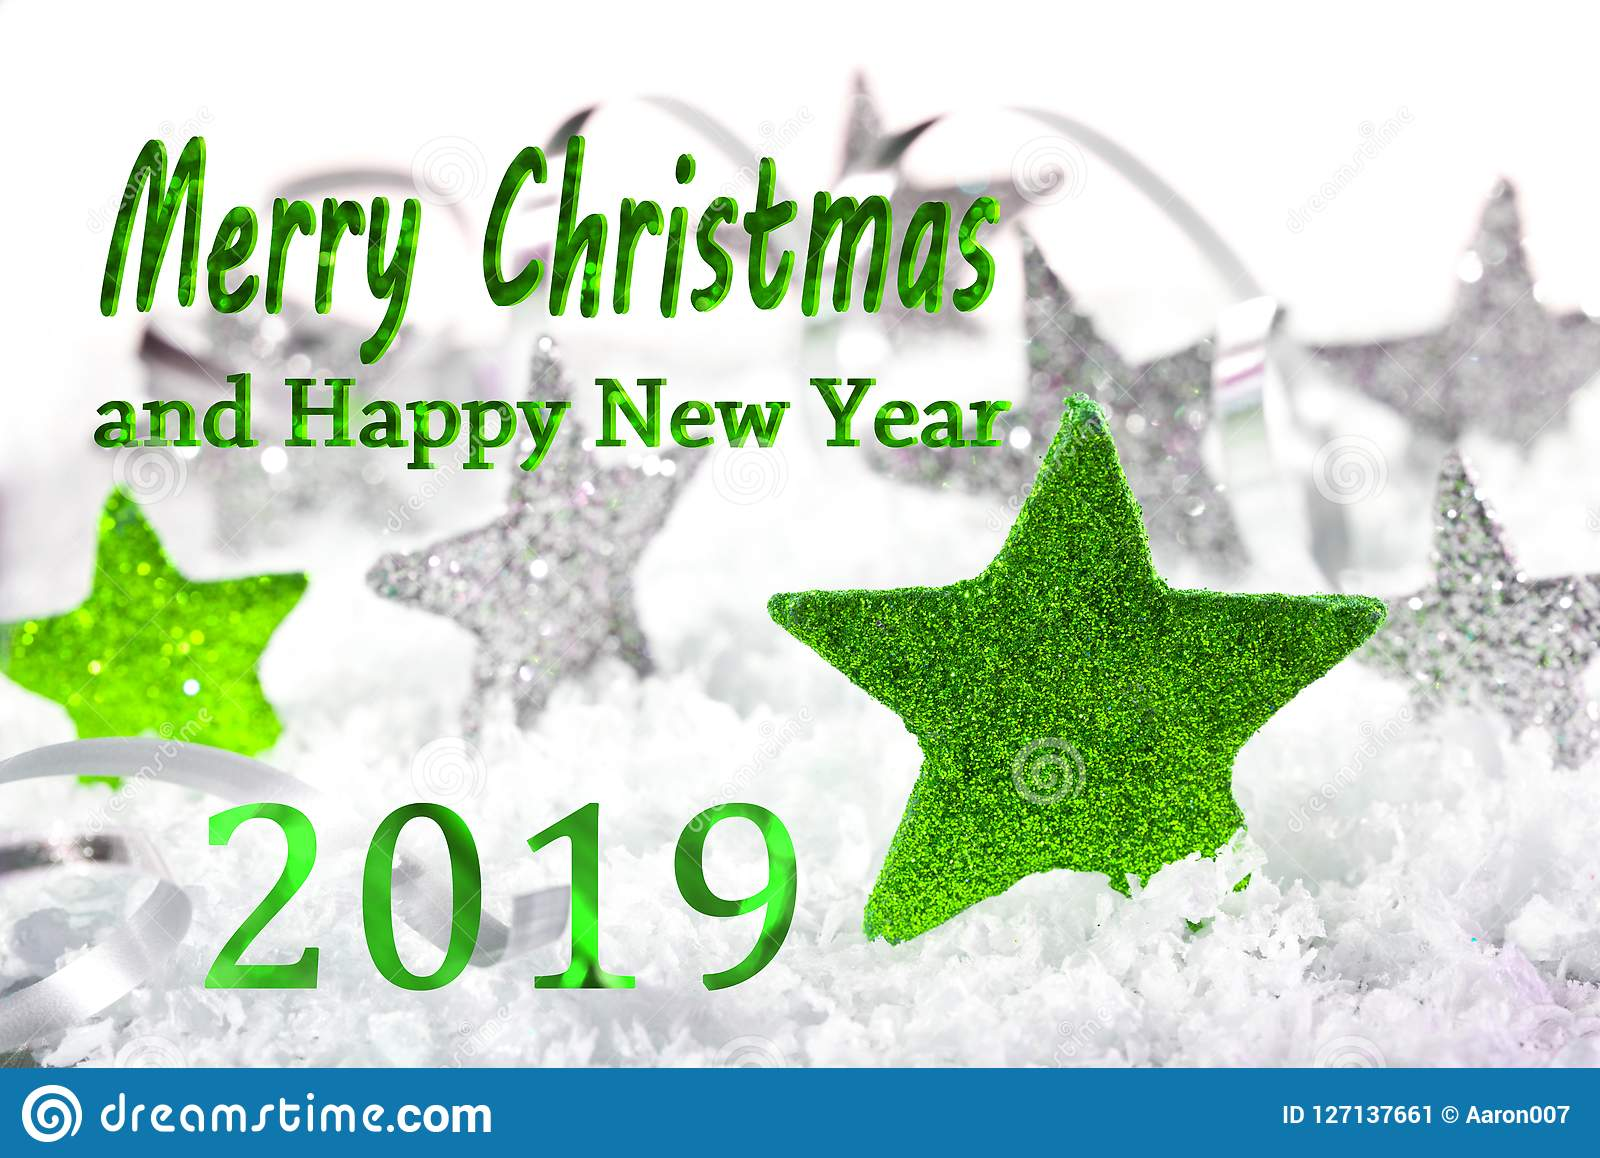 Merry Christmas and happy new year 201